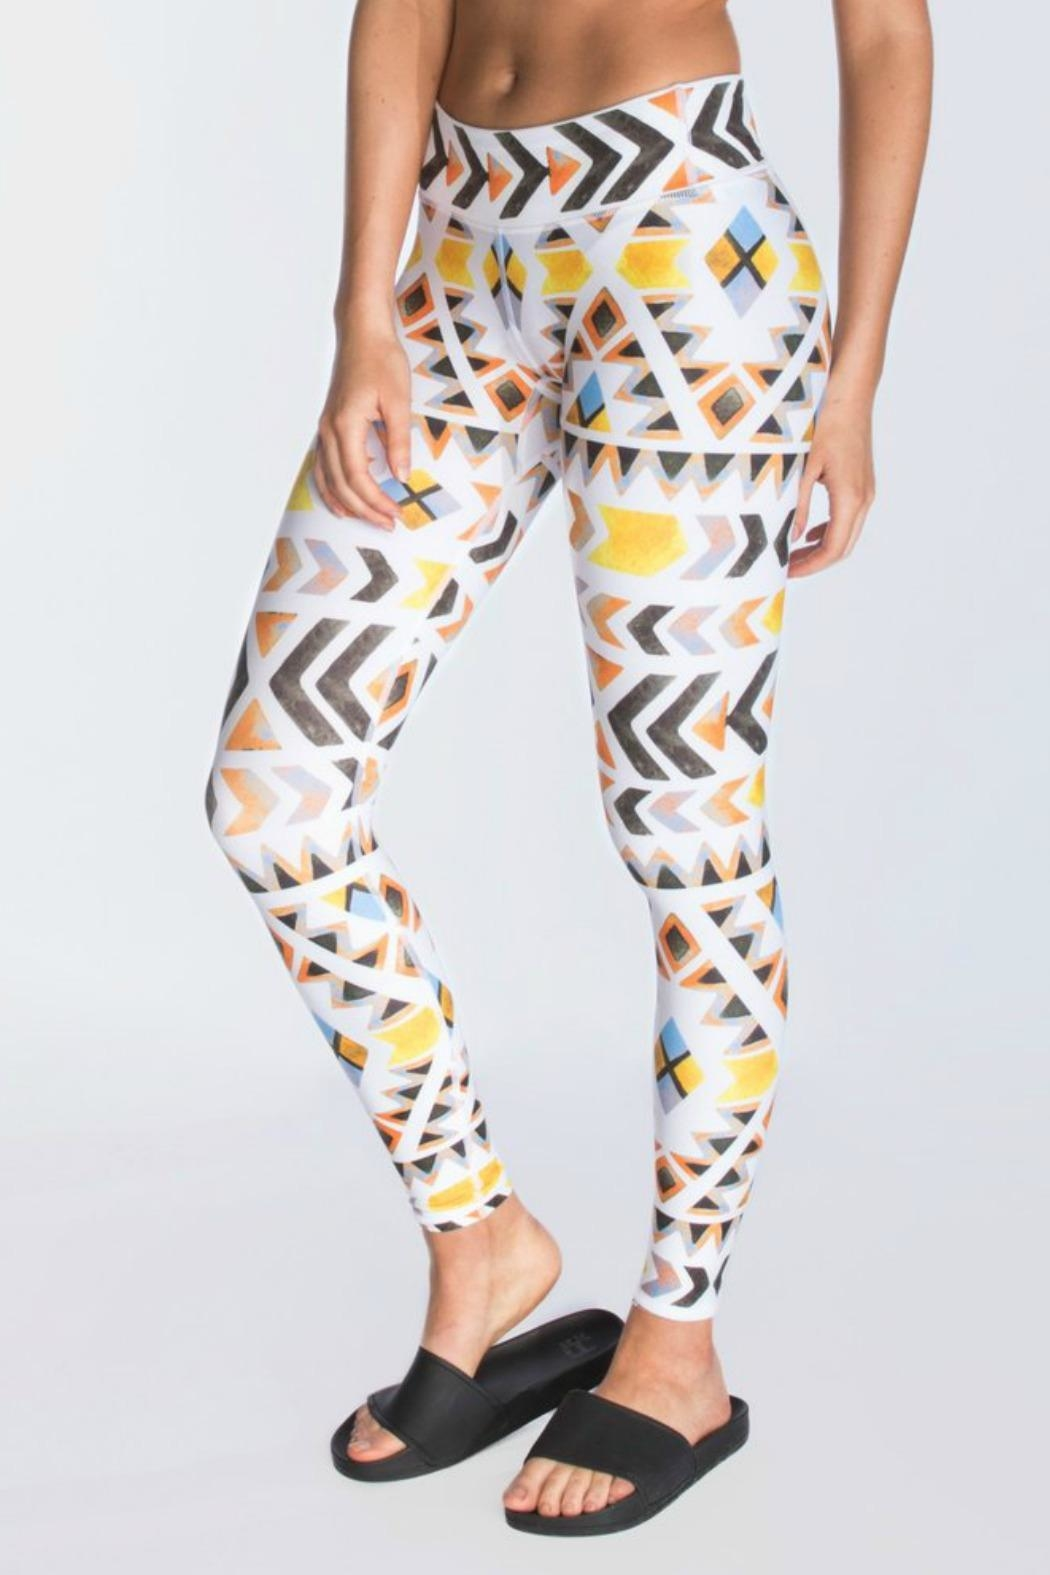 CHRLDR Native Printed Legging - Main Image